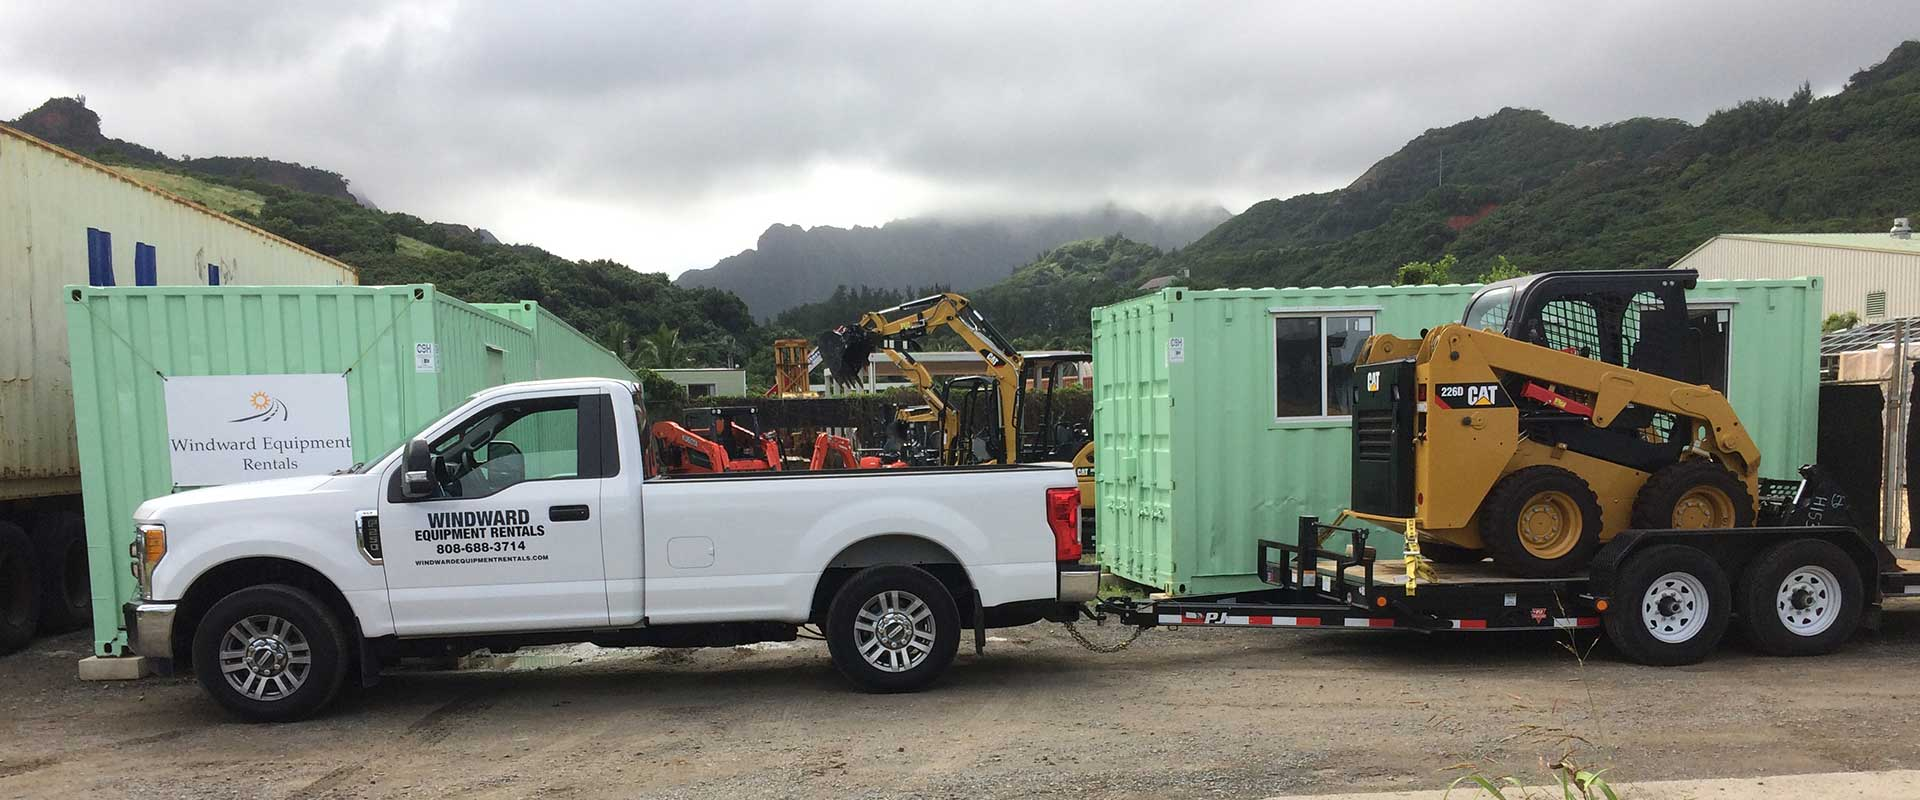 Rent Construction Equipment in Windward Oahu